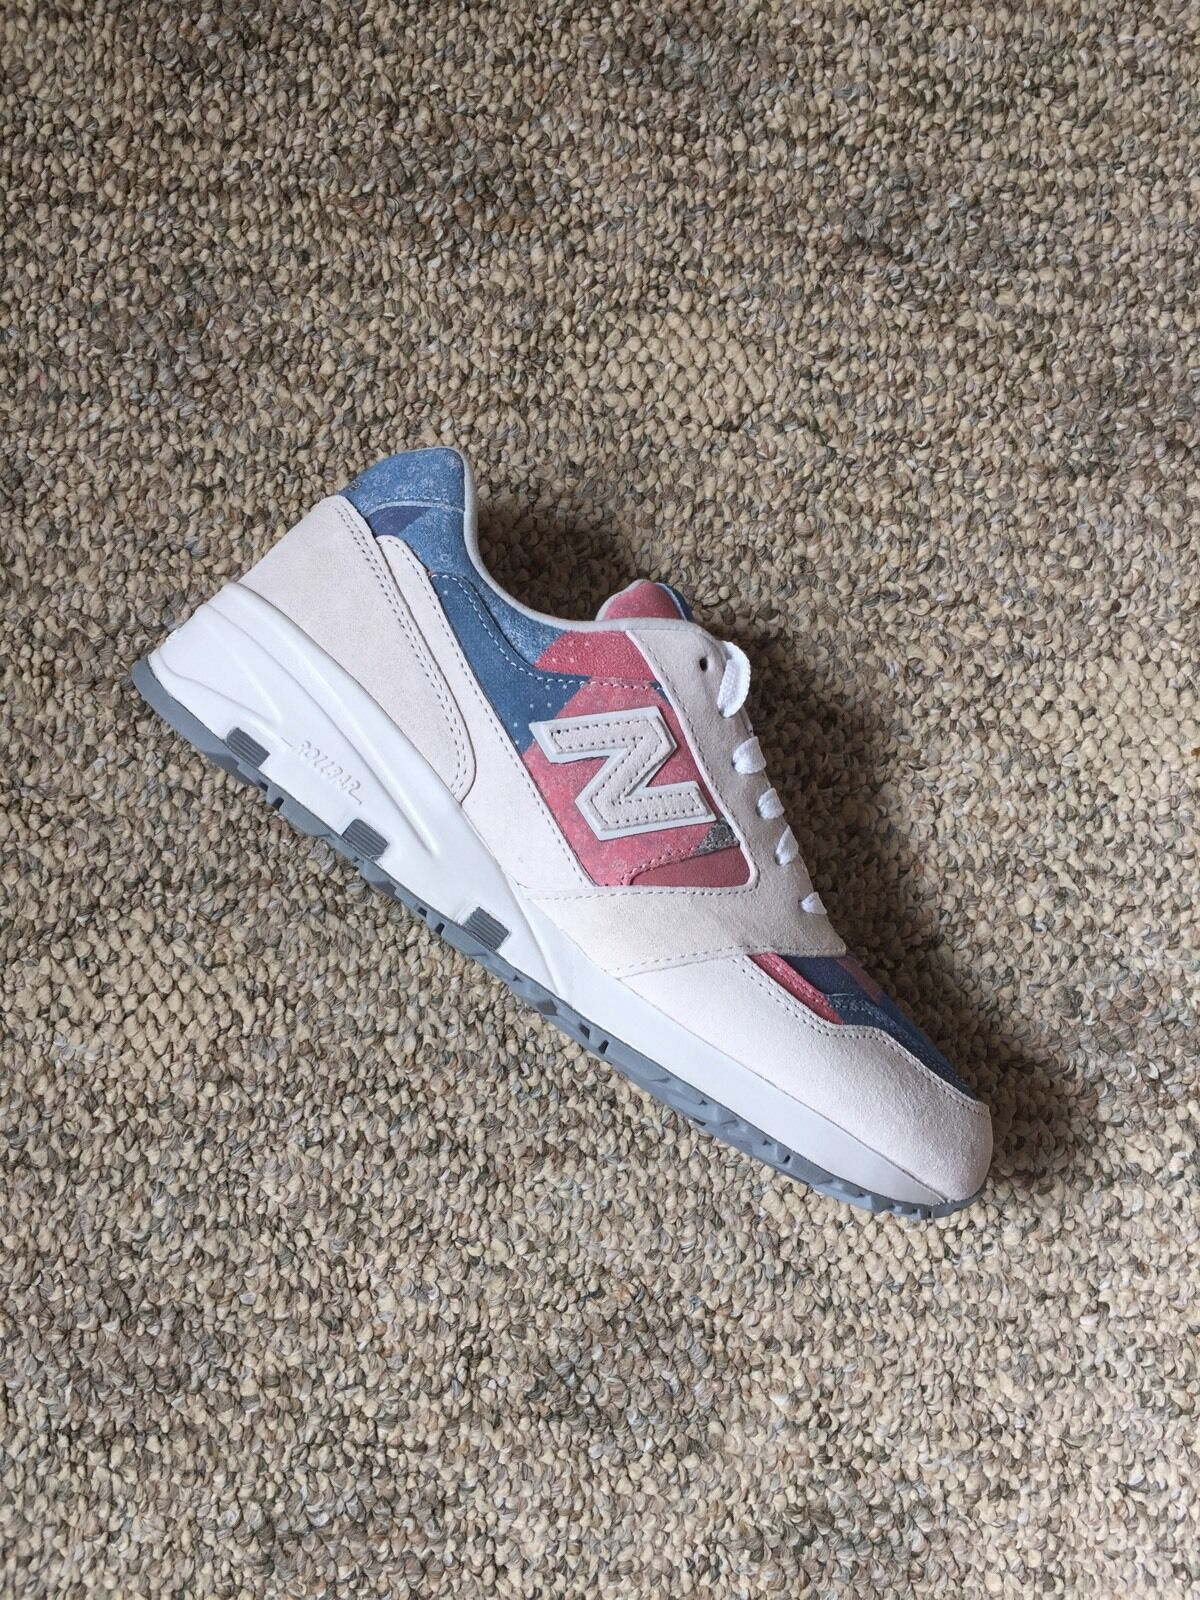 Concepts X New Balance 575 Independent Day US 10